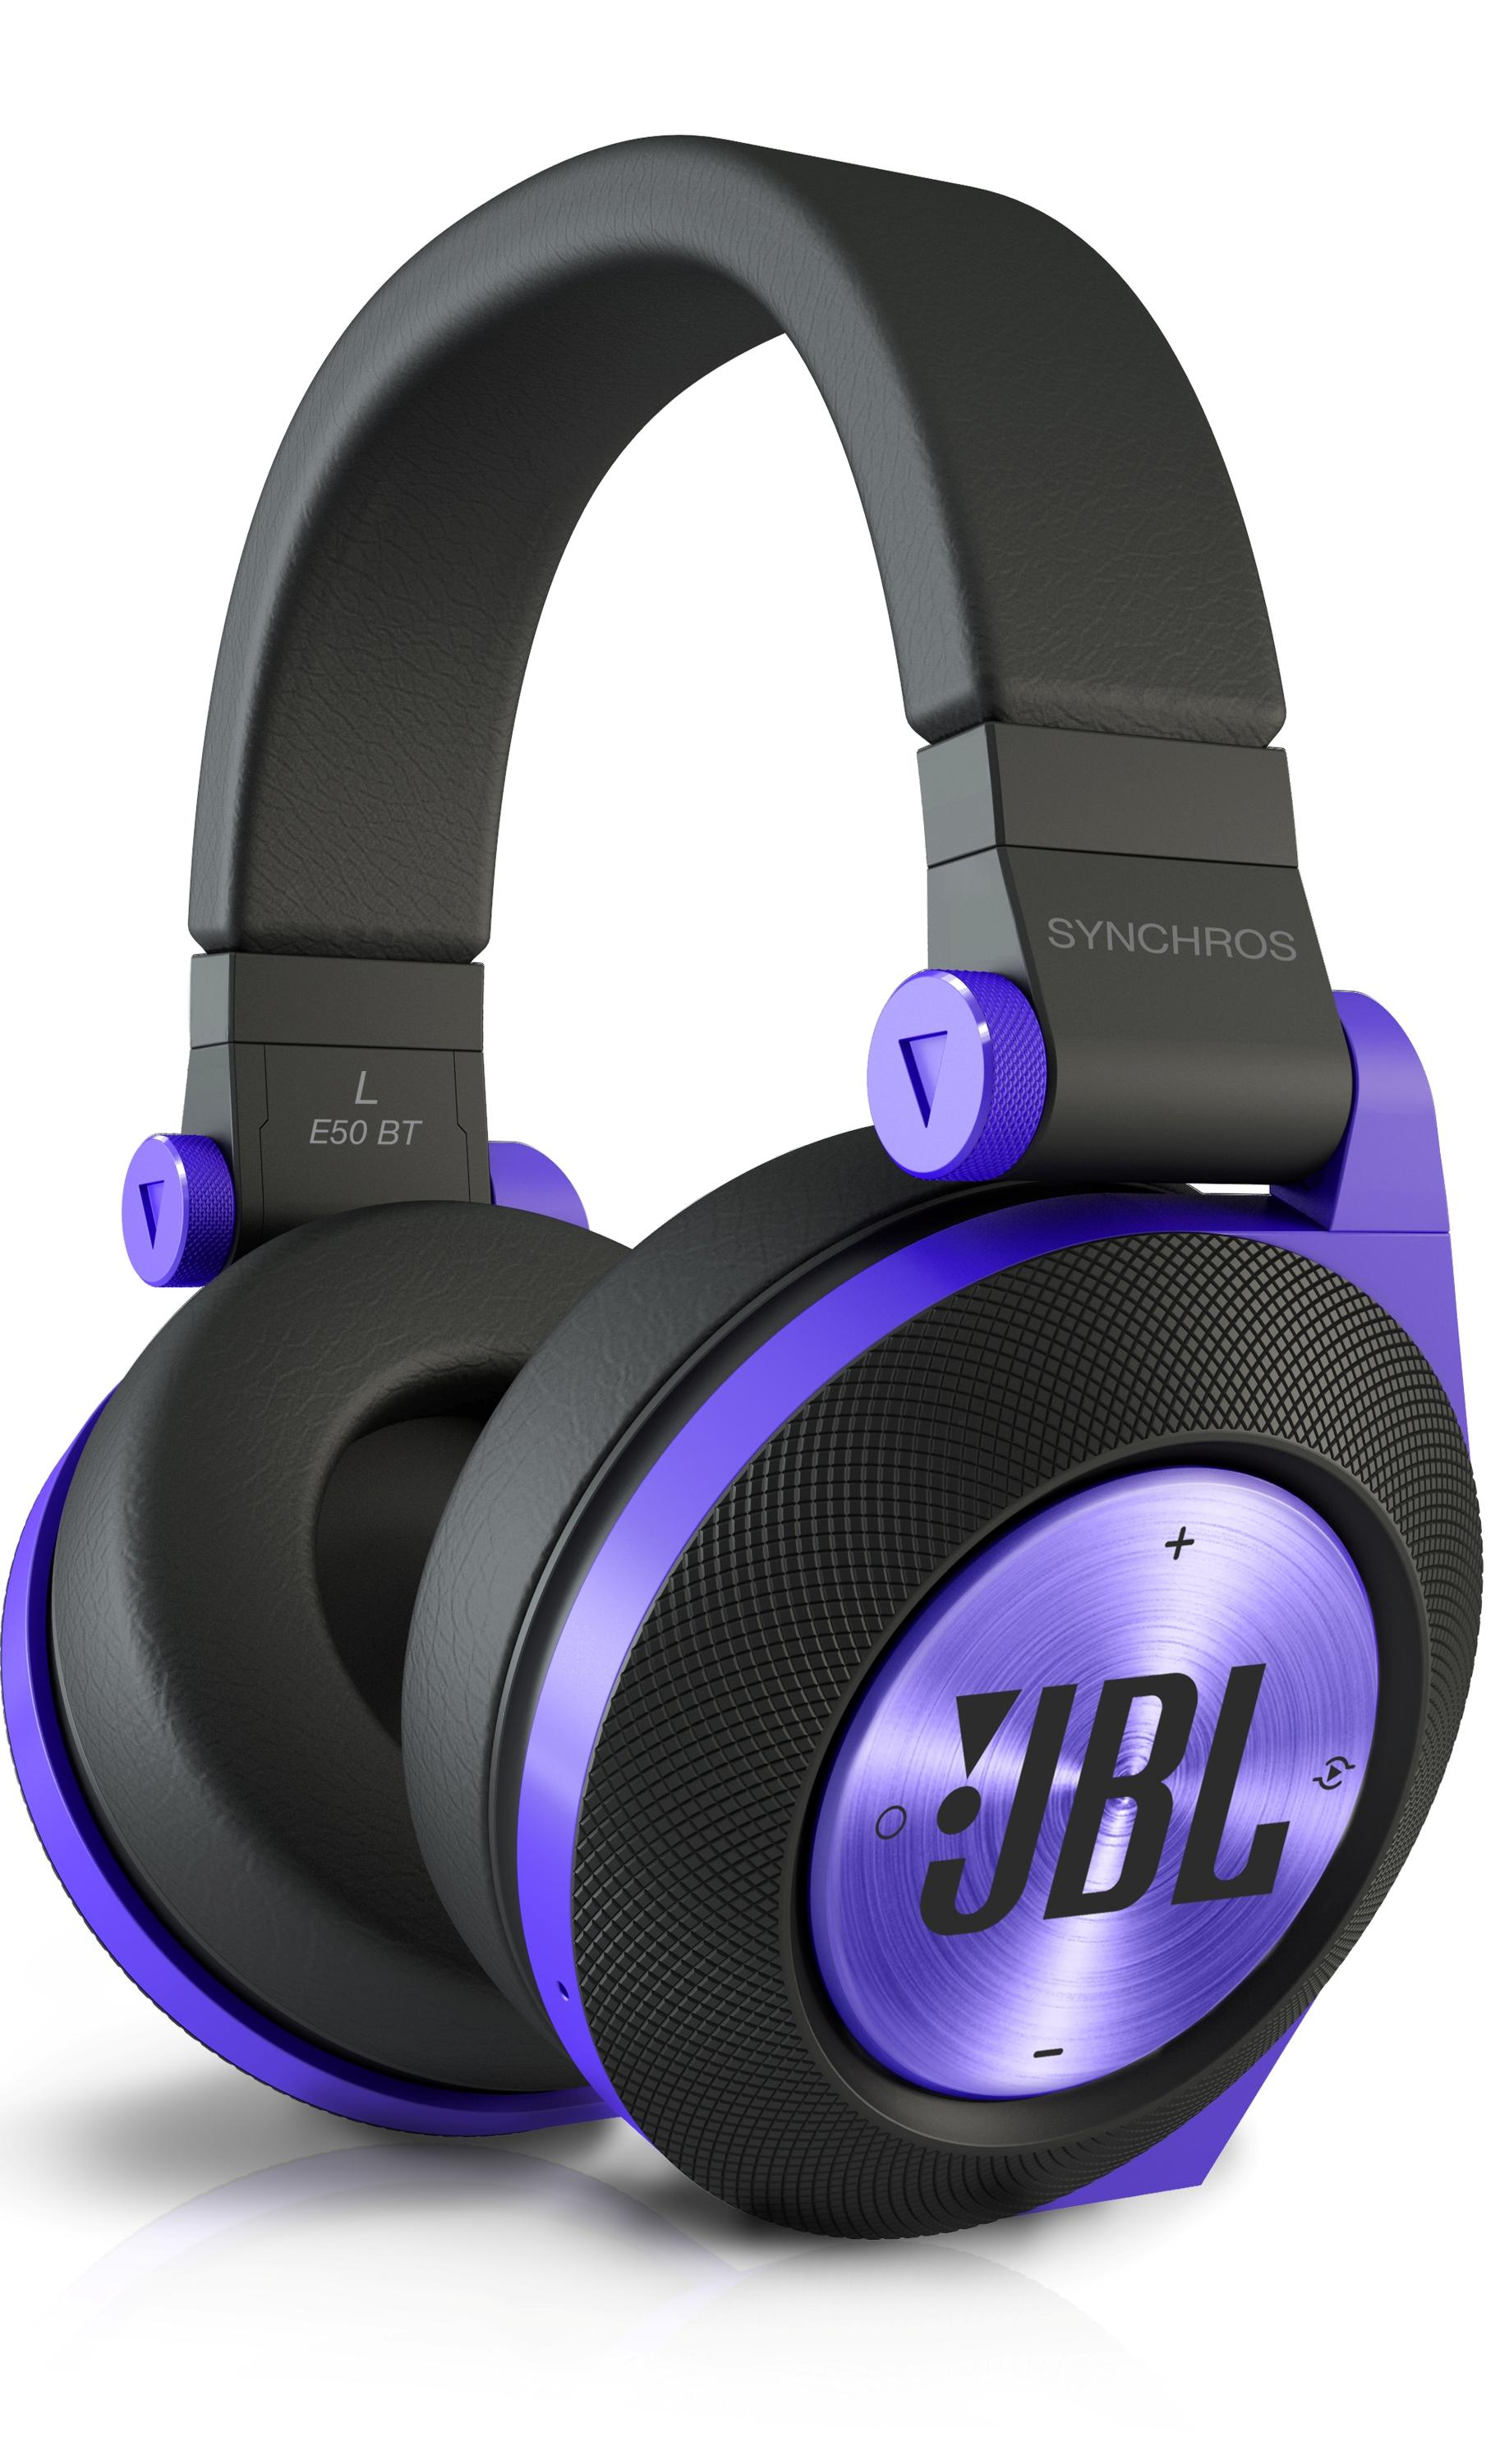 Amazon.com: JBL E50BT Purple Premium Wireless Over-Ear